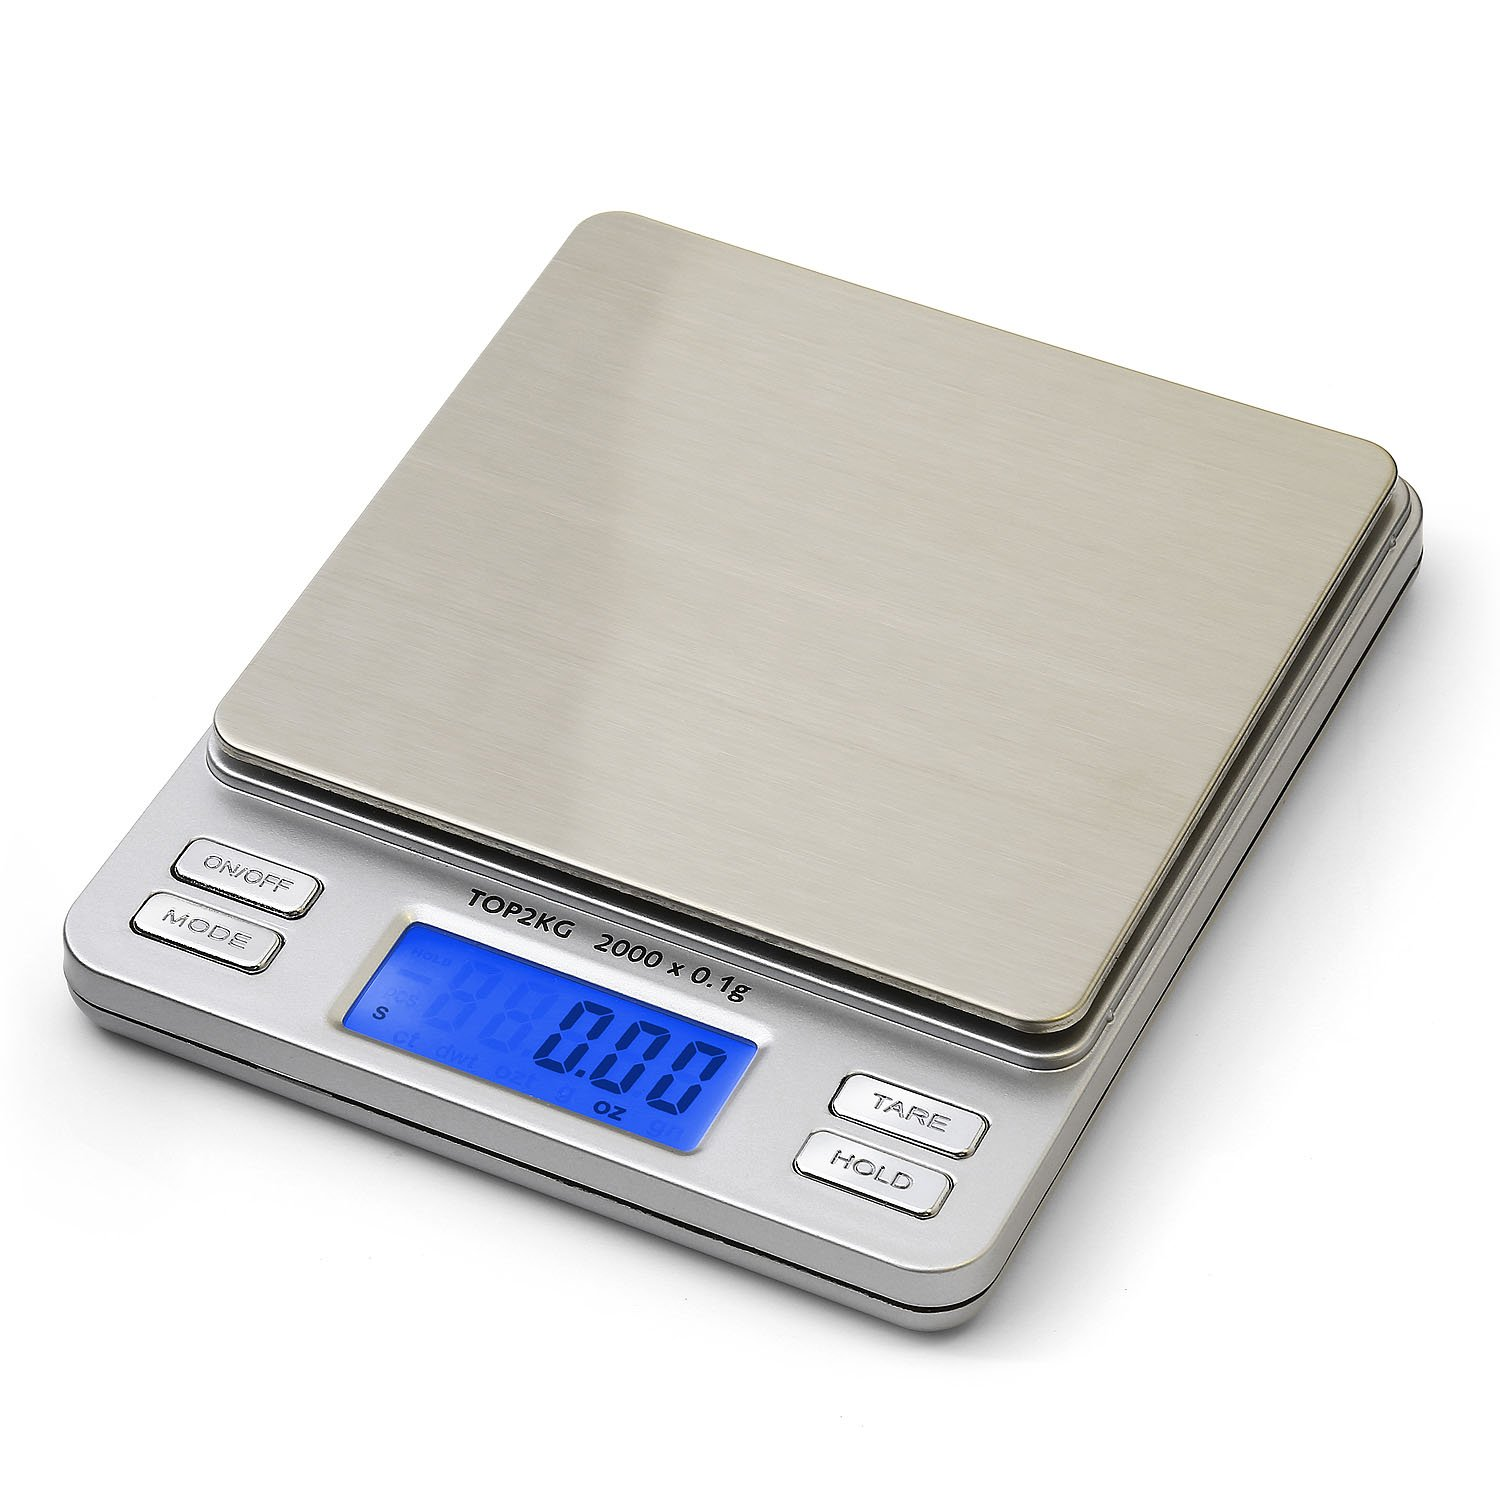 Smart weigh digital pro pocket scale top2kg best for Kitchen pro smart scale